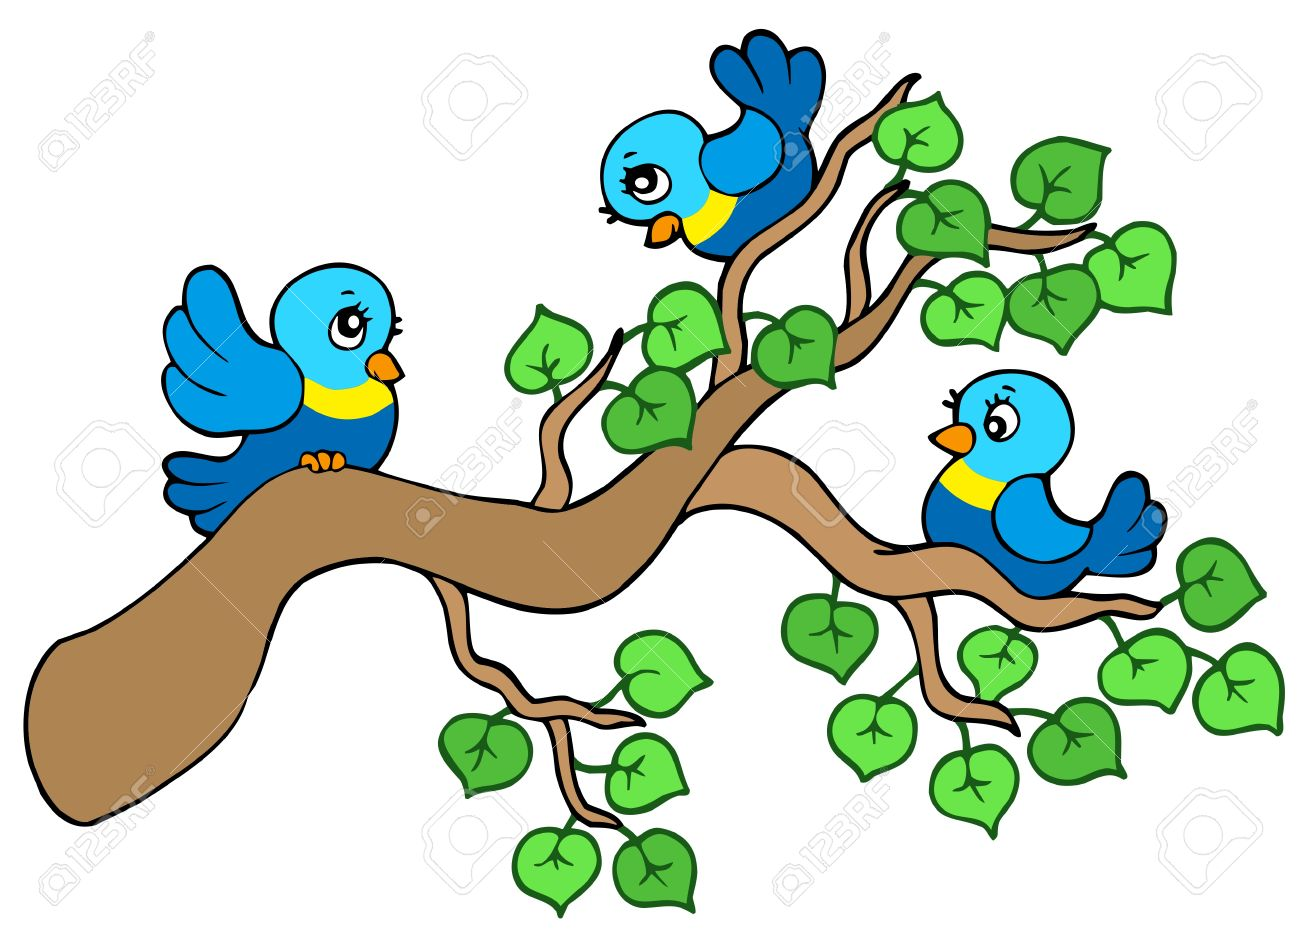 Three Small Birds Sitting On Branch Royalty Free Cliparts, Vectors ...